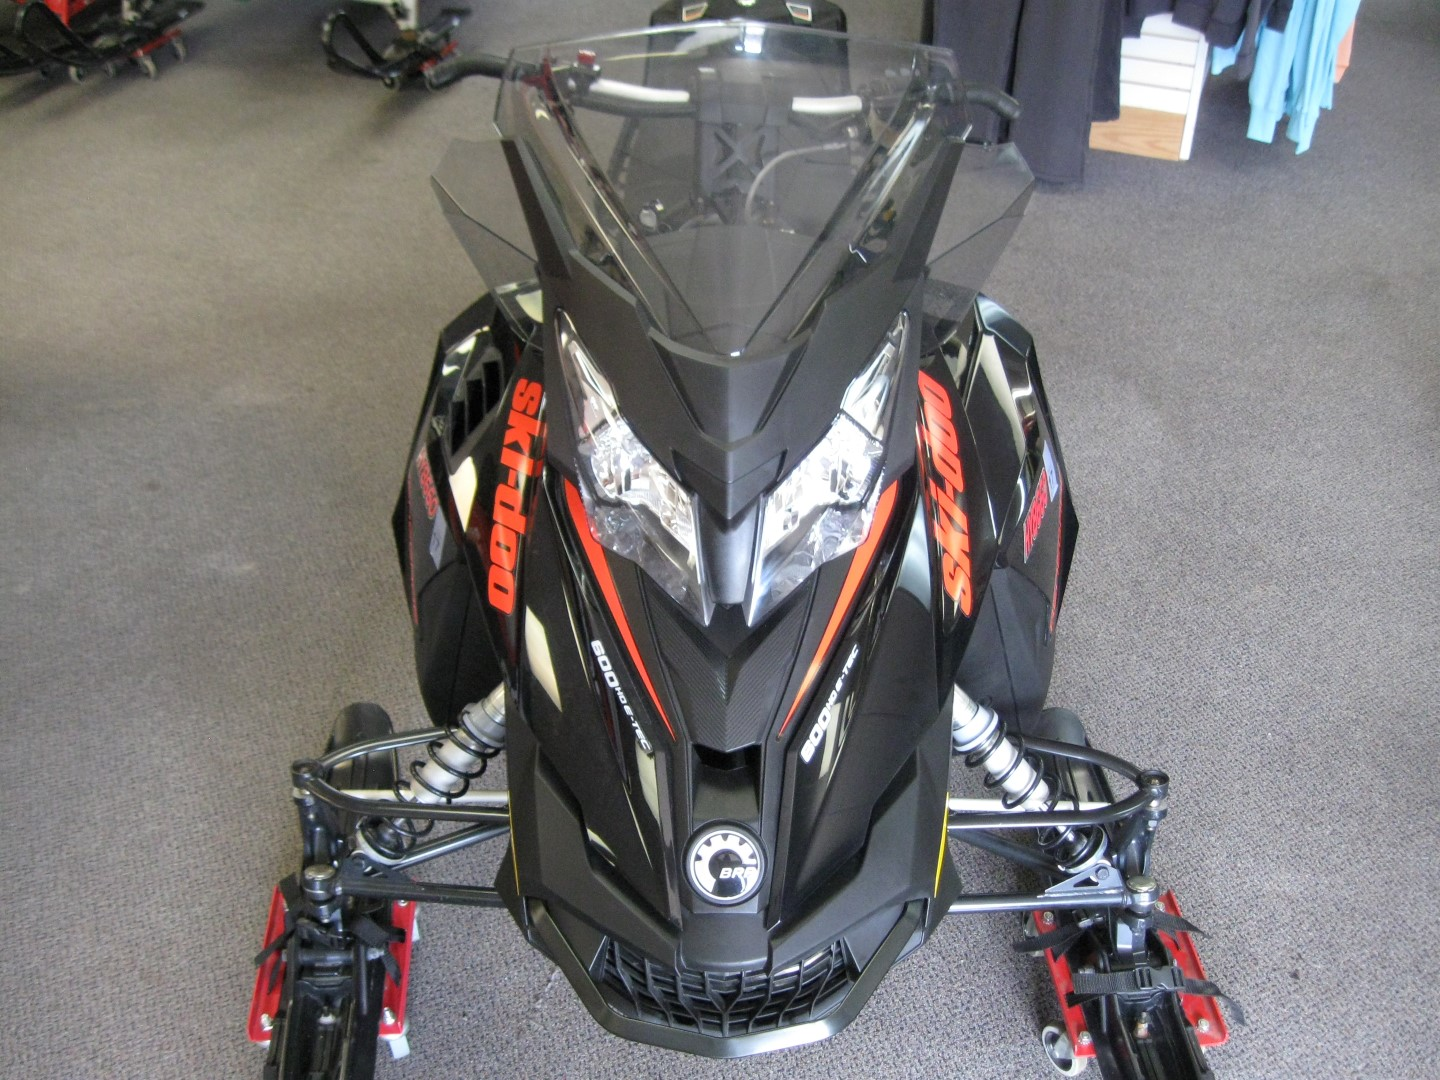 2015 Ski-Doo MXZ Renegade 600 E-Tec Snowmobile for sale eagan mn Seaberg Motorsports Crosslake MN Front black and orange